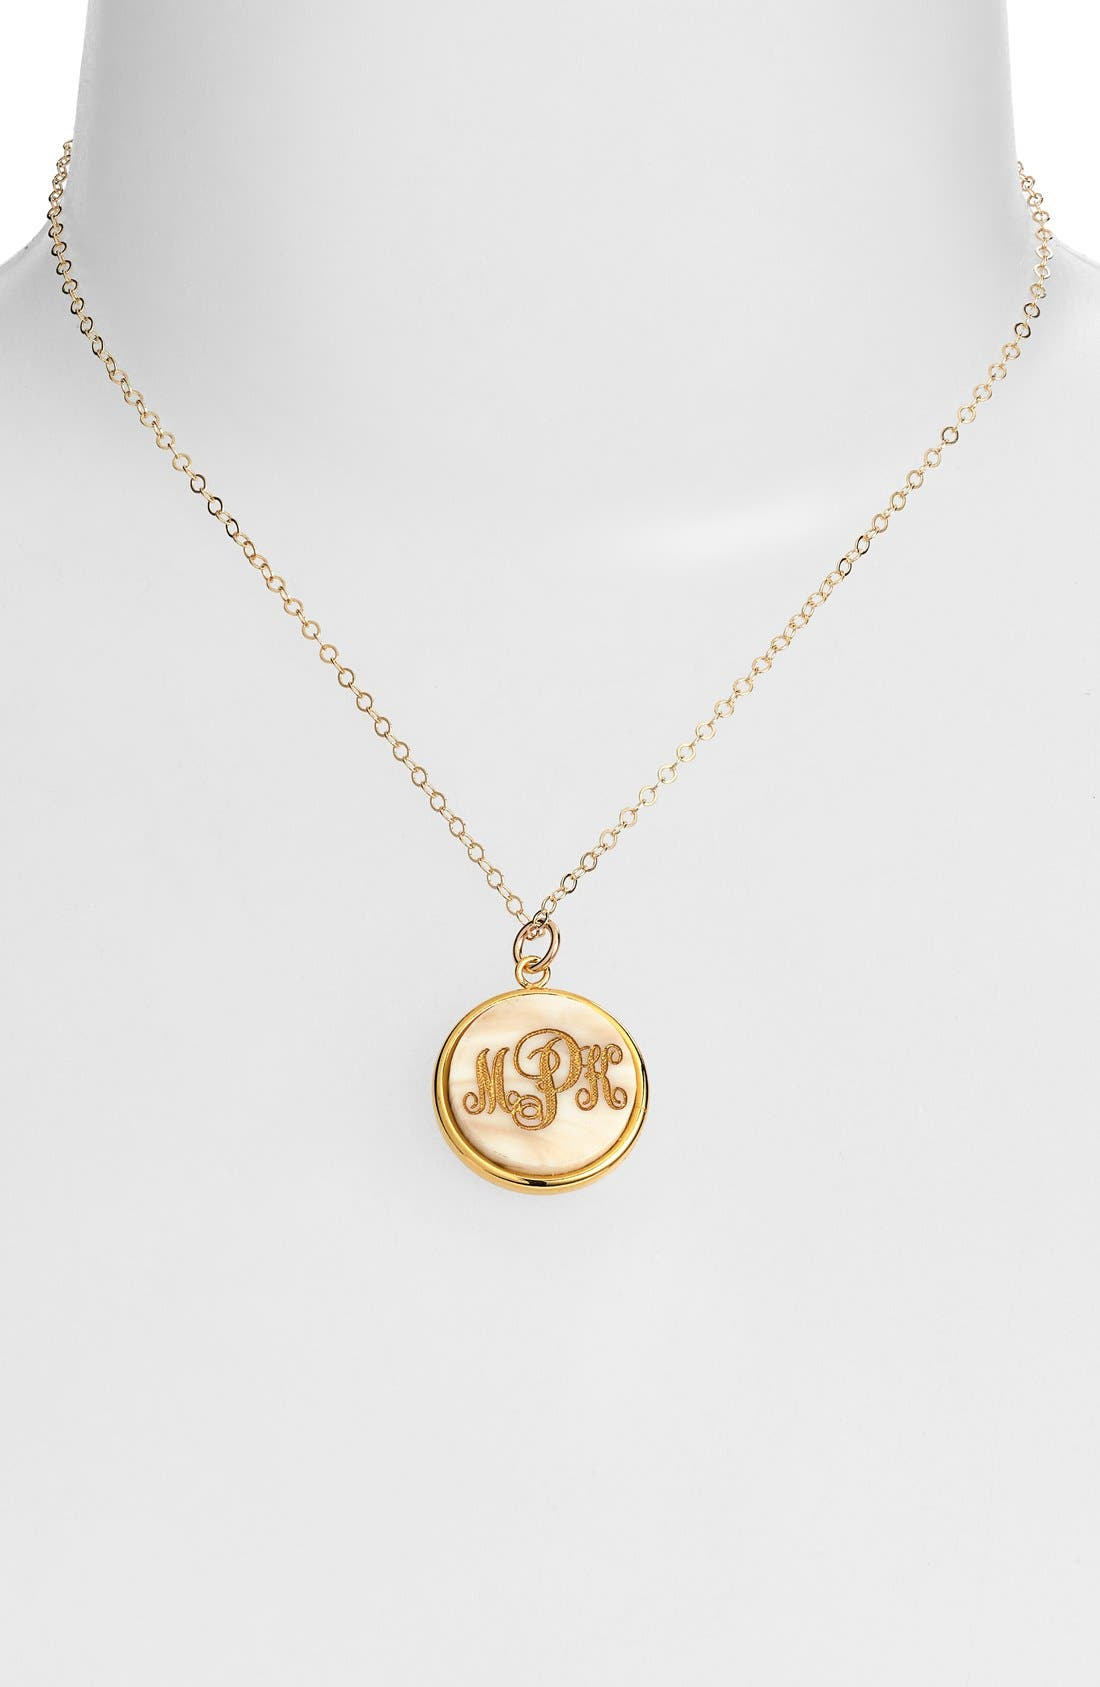 'Vineyard' Personalized Monogram Pendant Necklace,                             Alternate thumbnail 2, color,                             Blonde Tortoise